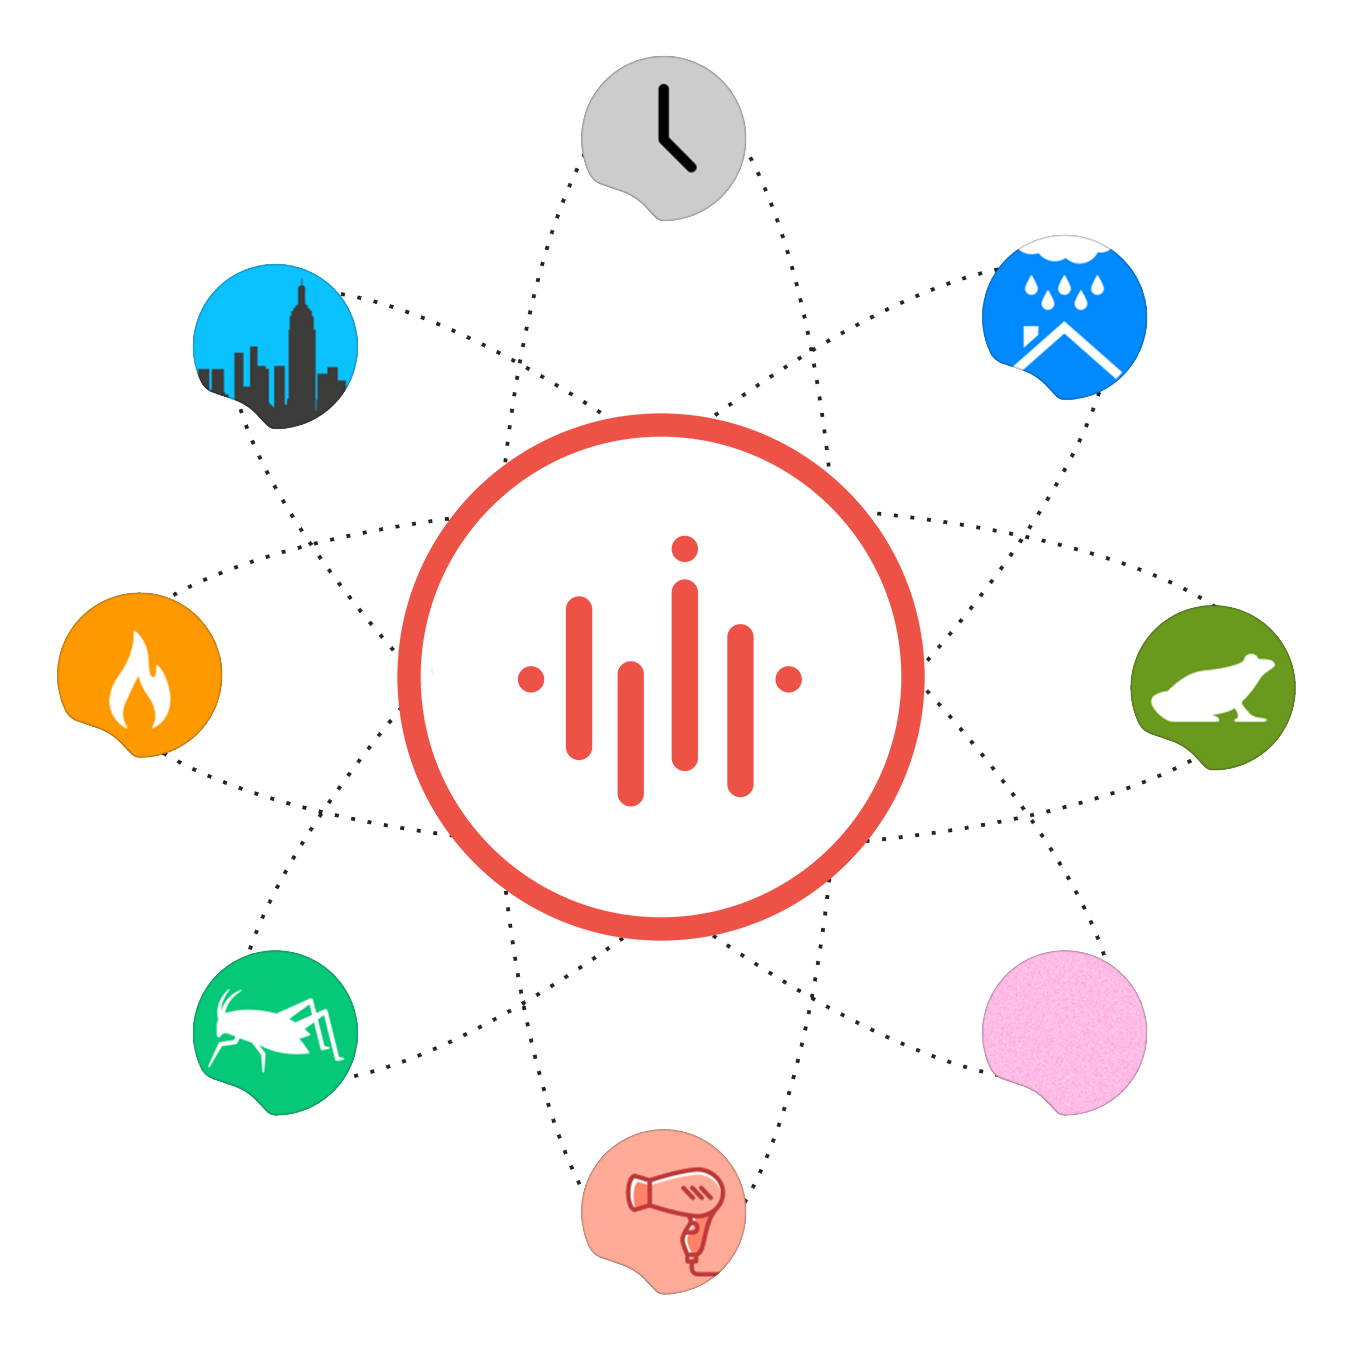 The various Invoked Apps logos circle around the Audio UX logo like an atomic particle.